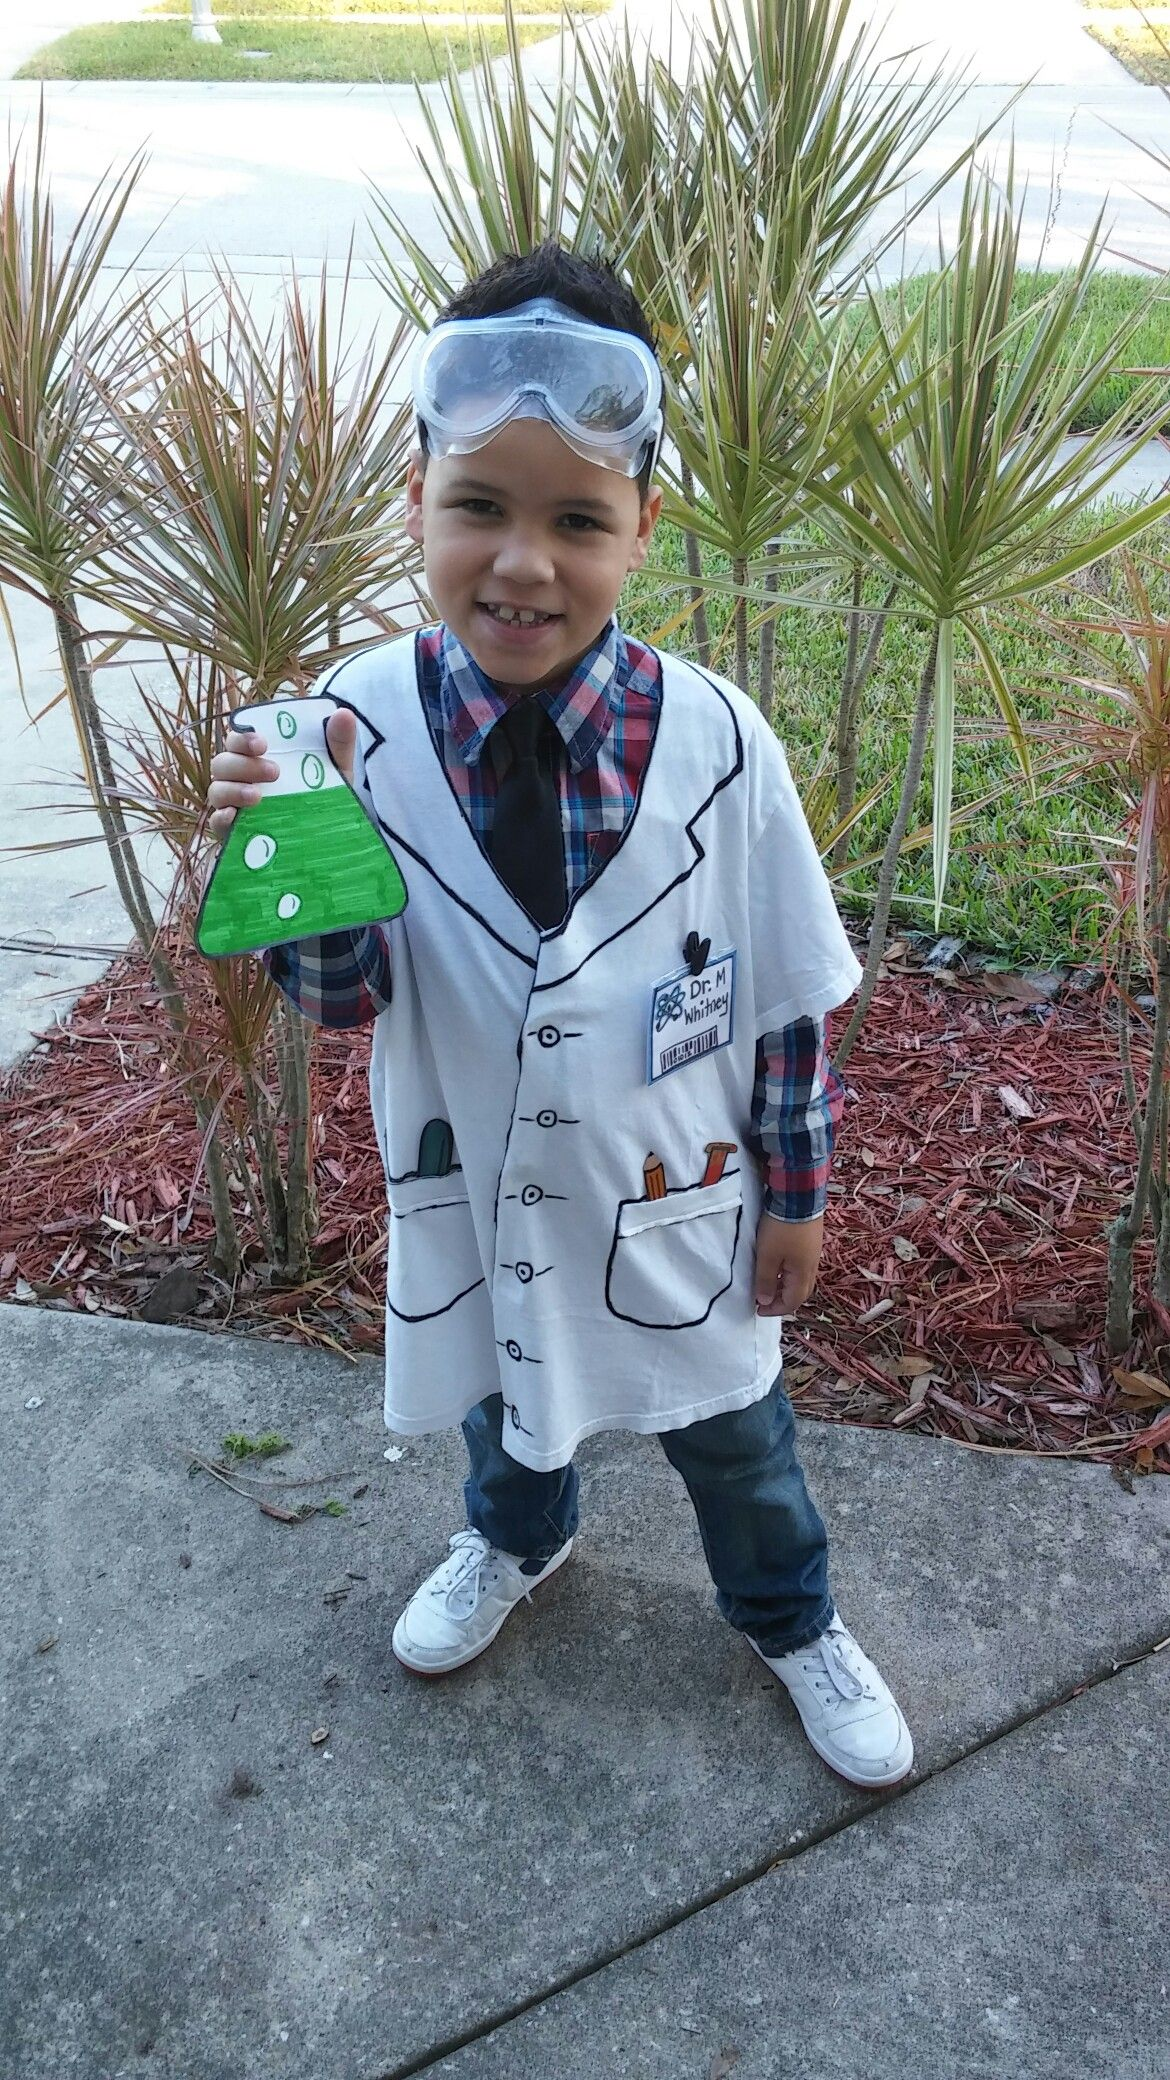 t-shirt and marker scientist lab coat for career day at school